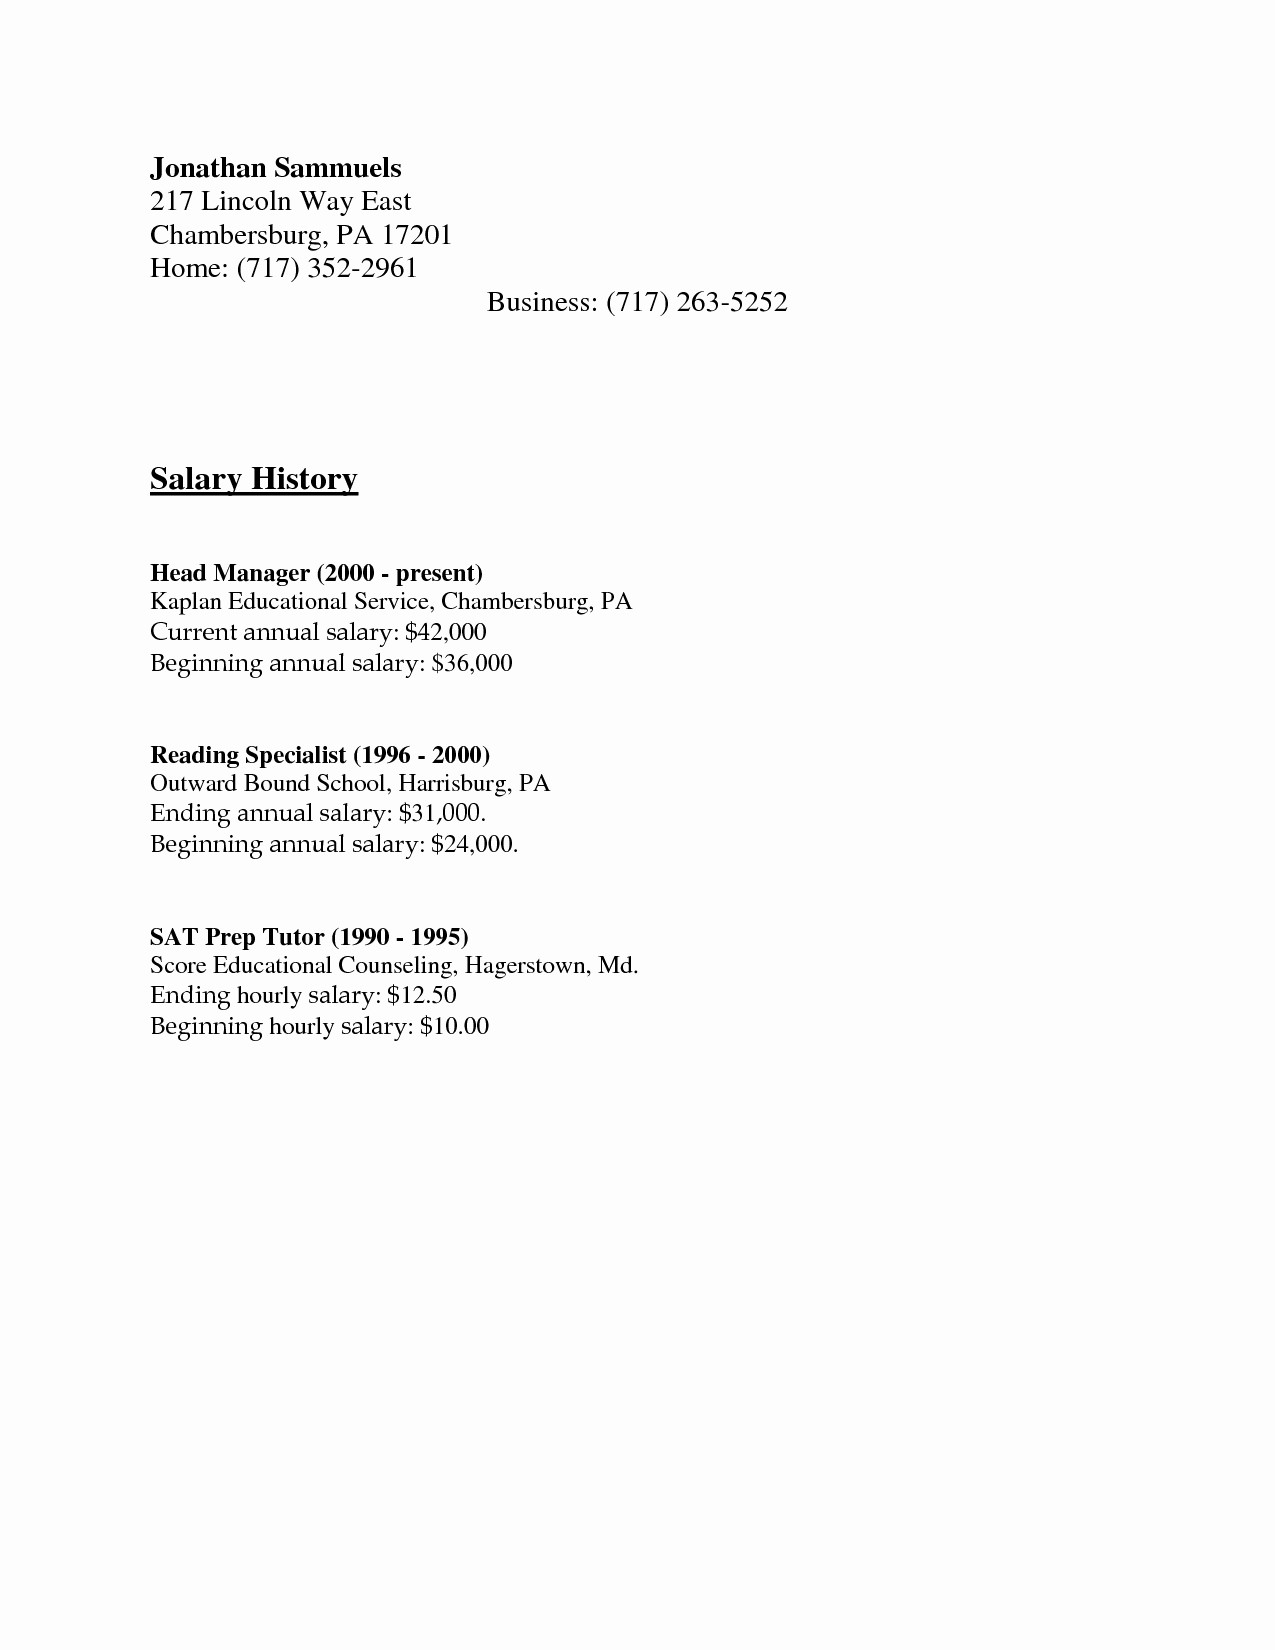 Salary History In Cover Letter Luxury Salary History Template